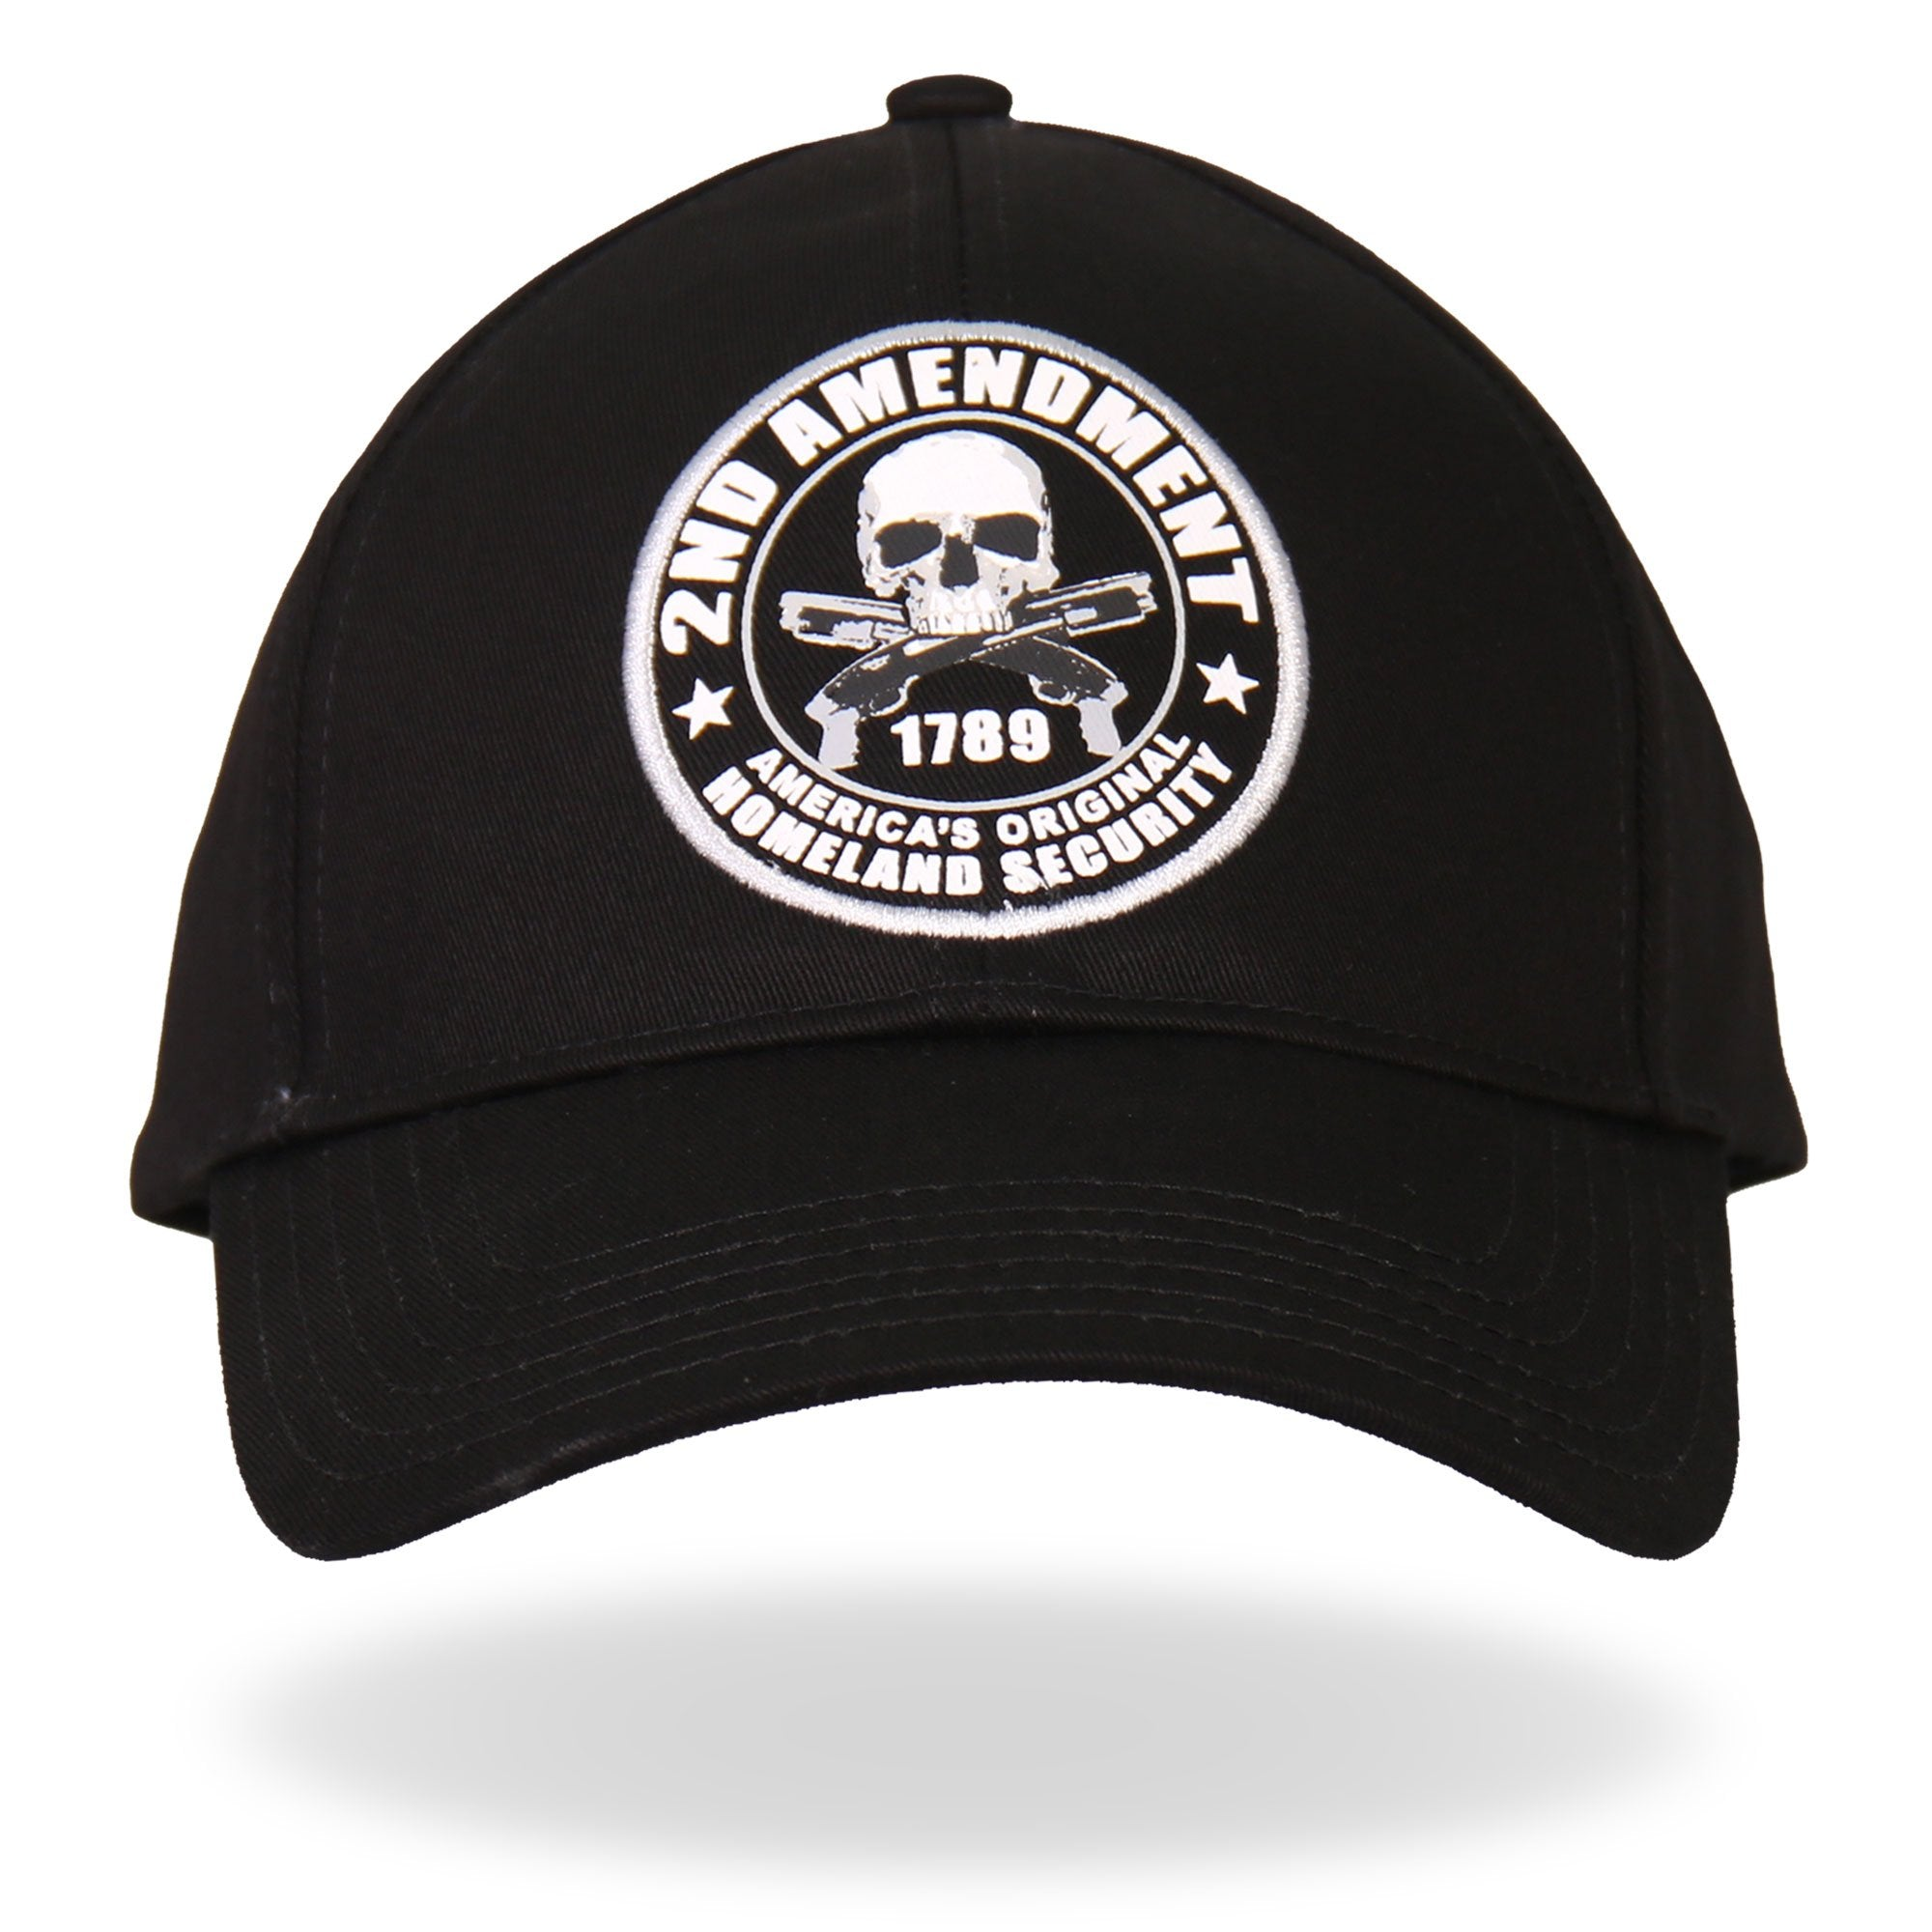 2nd Amendment - America's Original Homeland Security Ball Cap